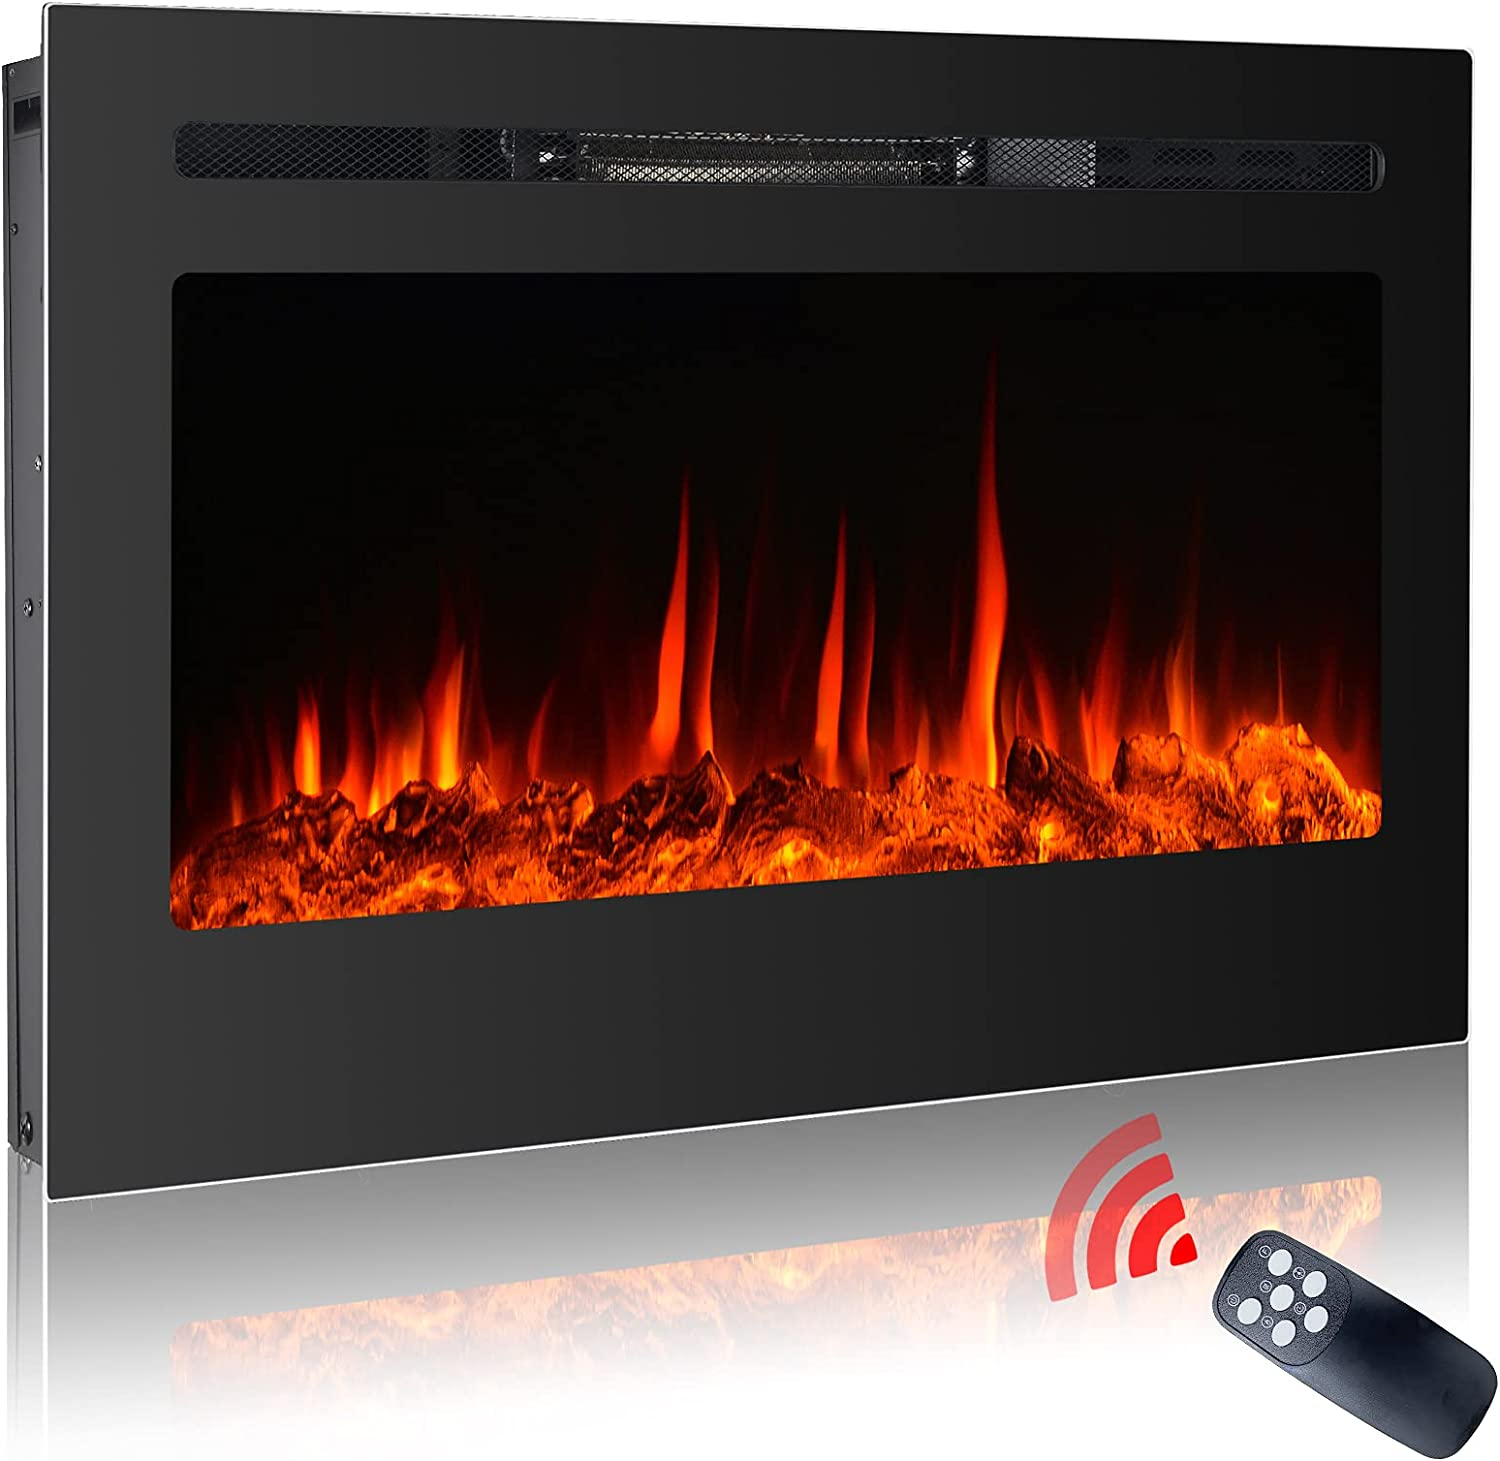 Homajor Daily Luxury goods bargain sale 36 inch Recessed and Ins Wall Fireplace Electric Mounted